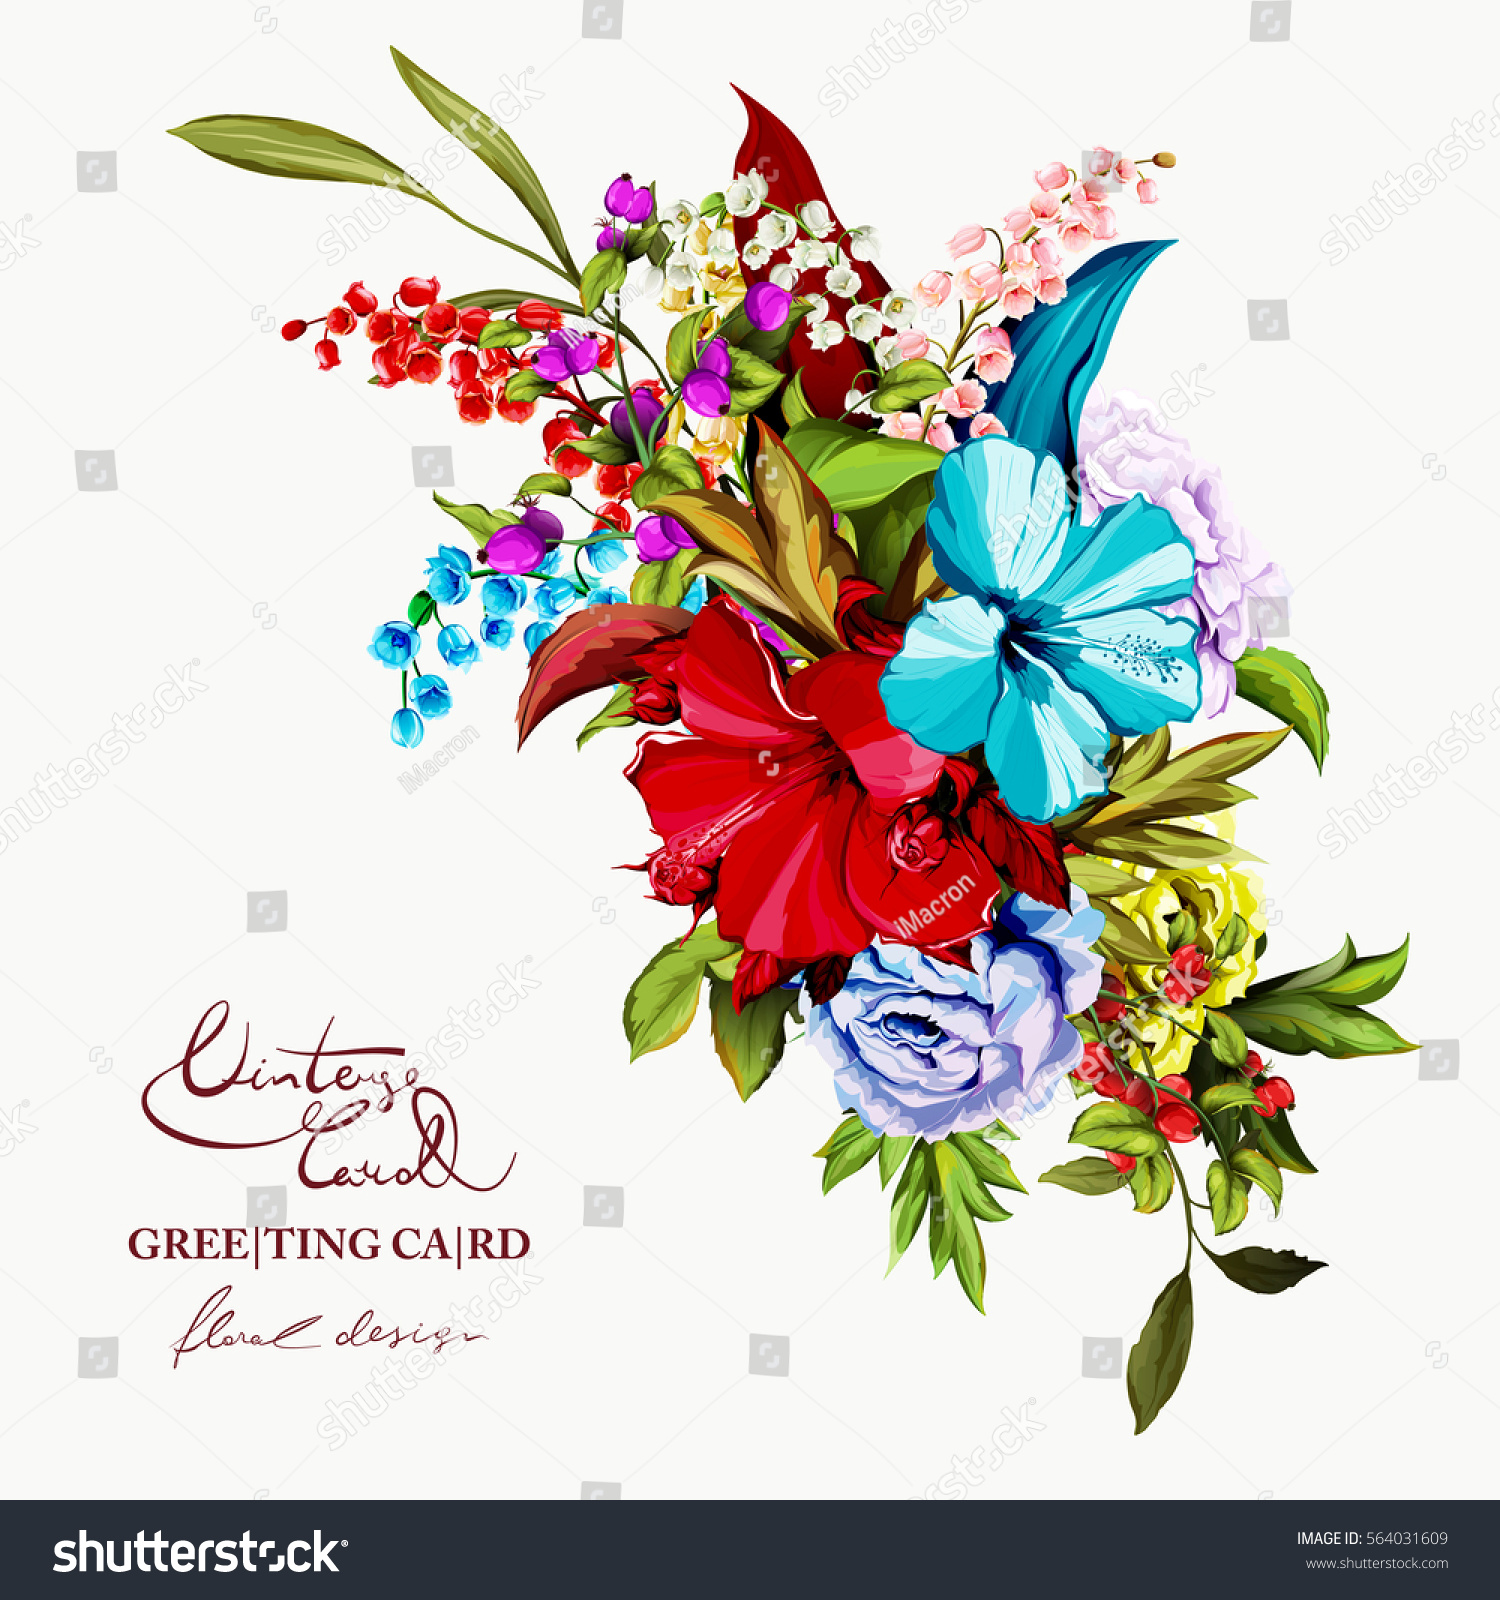 Cute dog flower bouquet photos images for wedding gown ideas flowers bouquet roses peony lily valley stock vector 564031609 izmirmasajfo Gallery